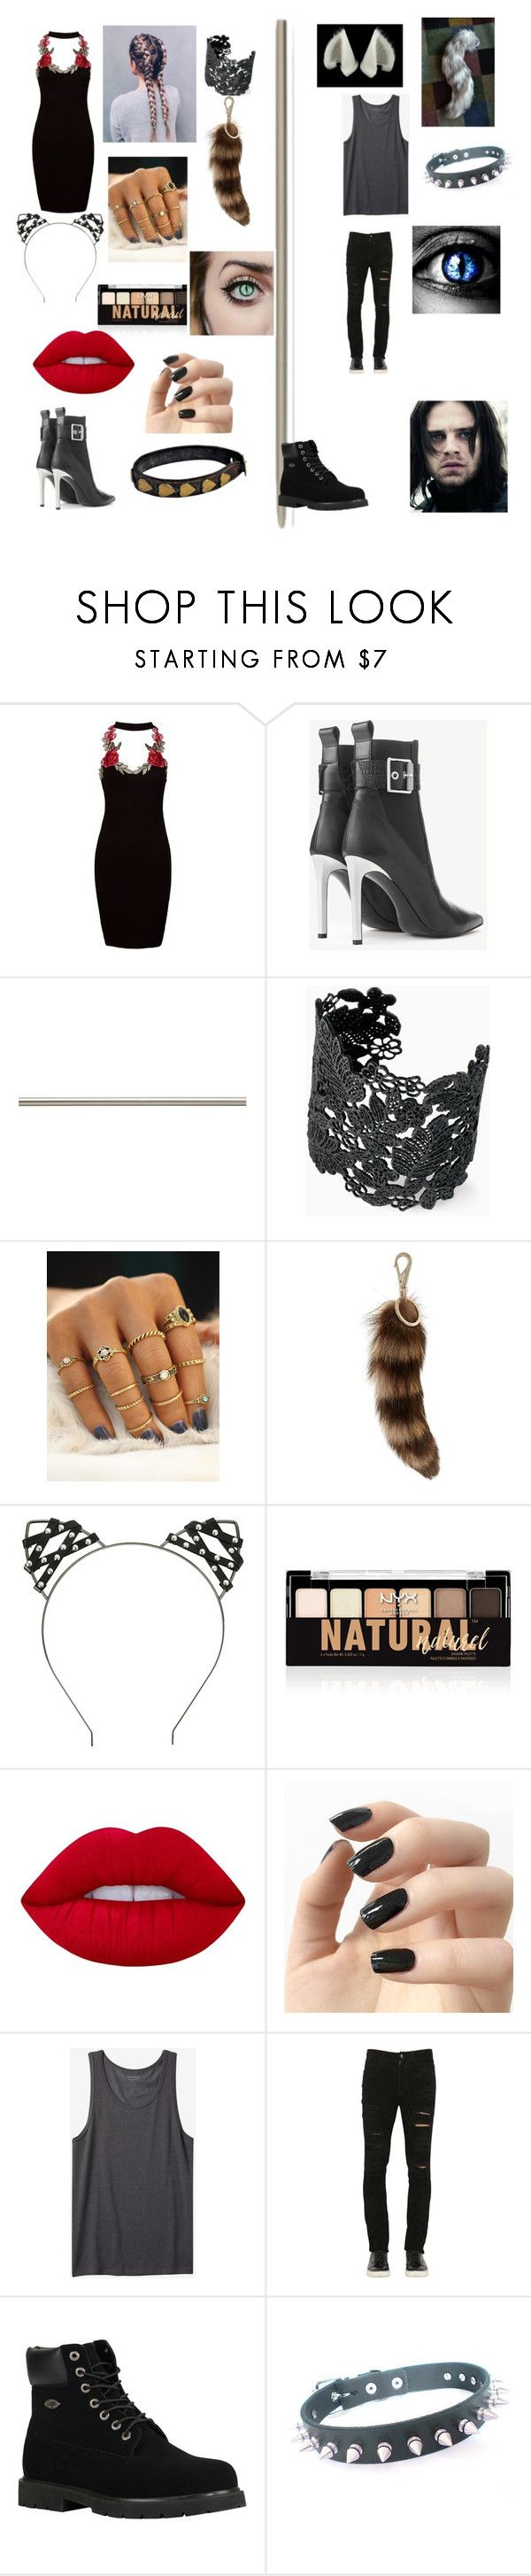 """we have to be what movie gone wrong with bucky"" by hardyzgirl04 ❤ liked on Polyvore featuring Sans Souci, rag & bone, Laura Ashley, Stella & Dot, Givenchy, Hot Topic, NYX, Lime Crime, Incoco and Maison Kitsuné"